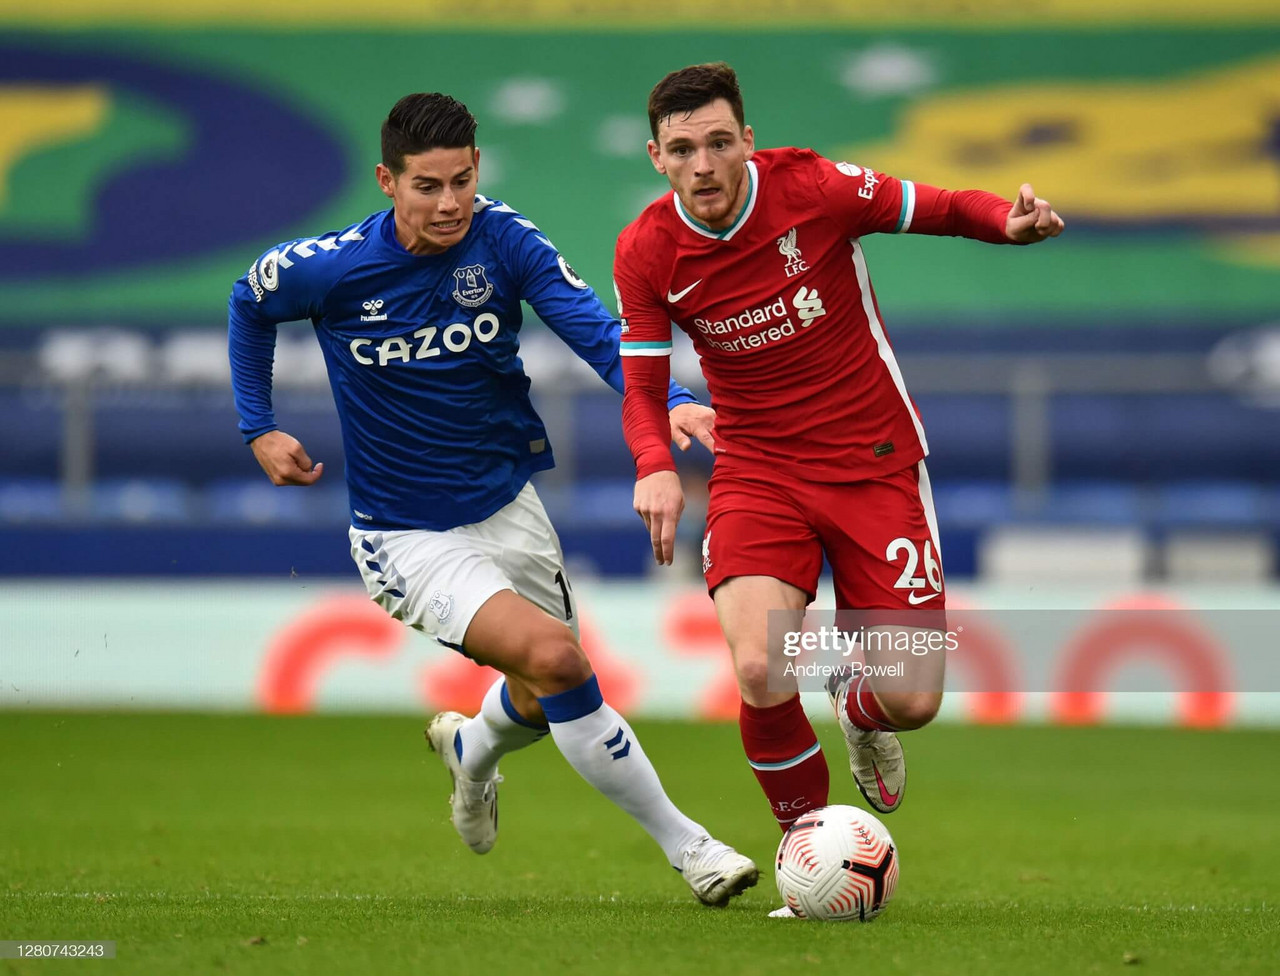 Liverpool vs Everton: The key battles to look out for in the Merseyside Derby